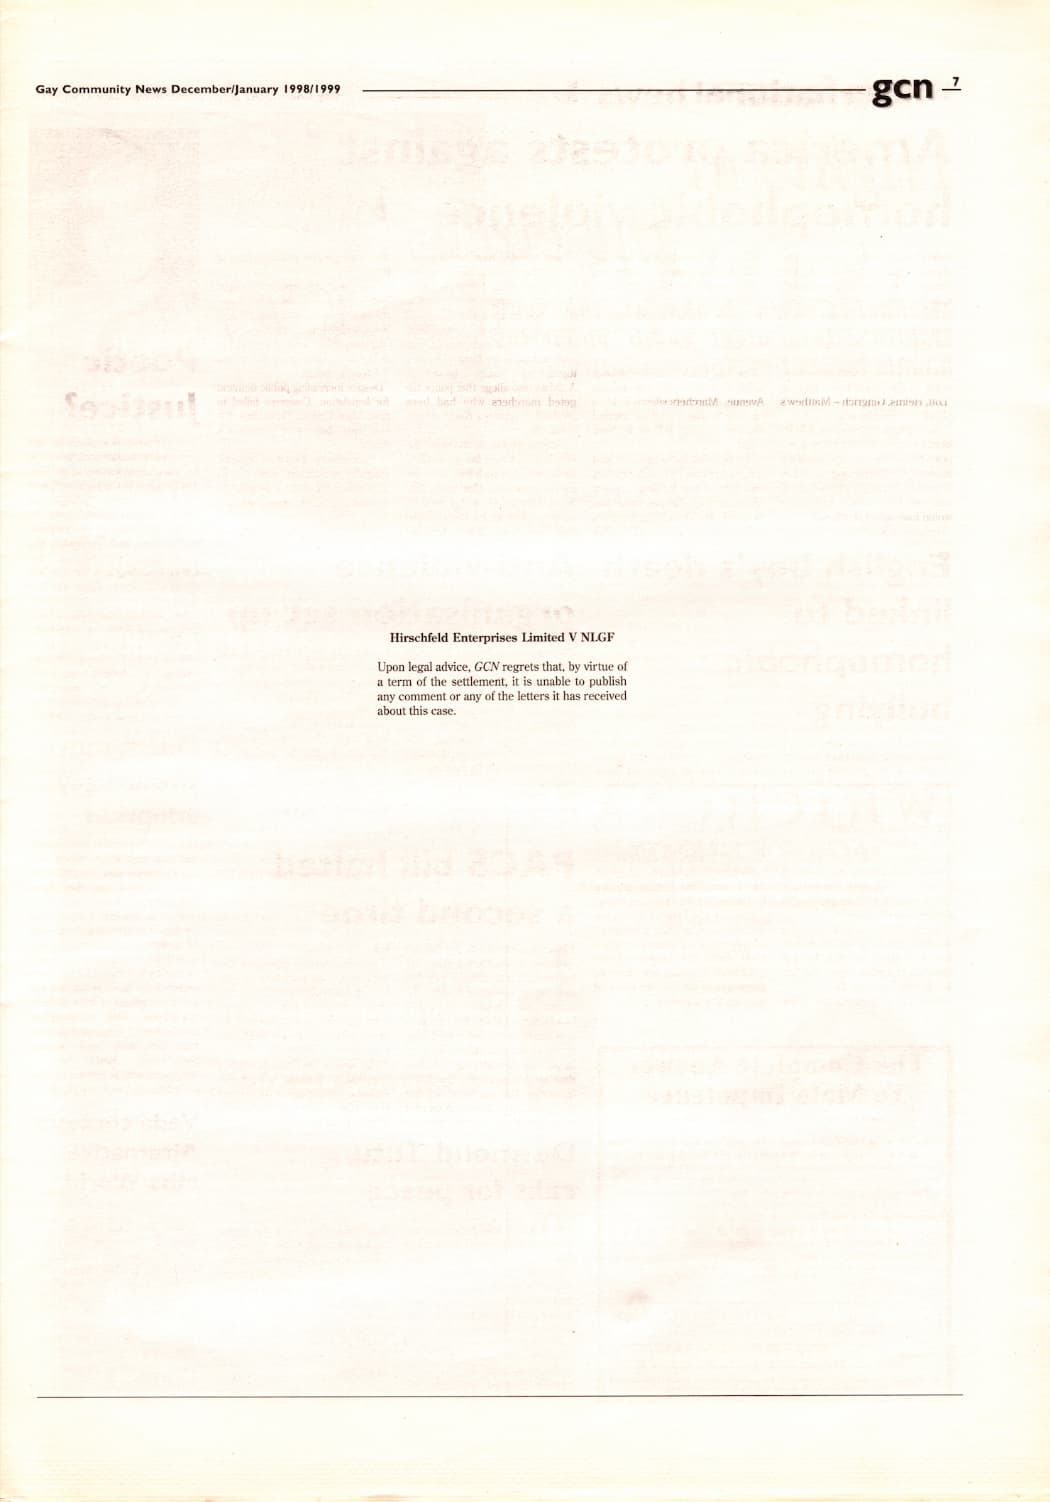 """Taking a look at the production process of GCN: Extract from GCN December/January 1998/1999 - a white page with text on the centre which read """"Hirschfeld Enterprises V NLGF - Upon legal advice, GCN regrets that, by virtue of a term of settlement, it is unable to publish any comment or any of the letters it has received about this case""""."""